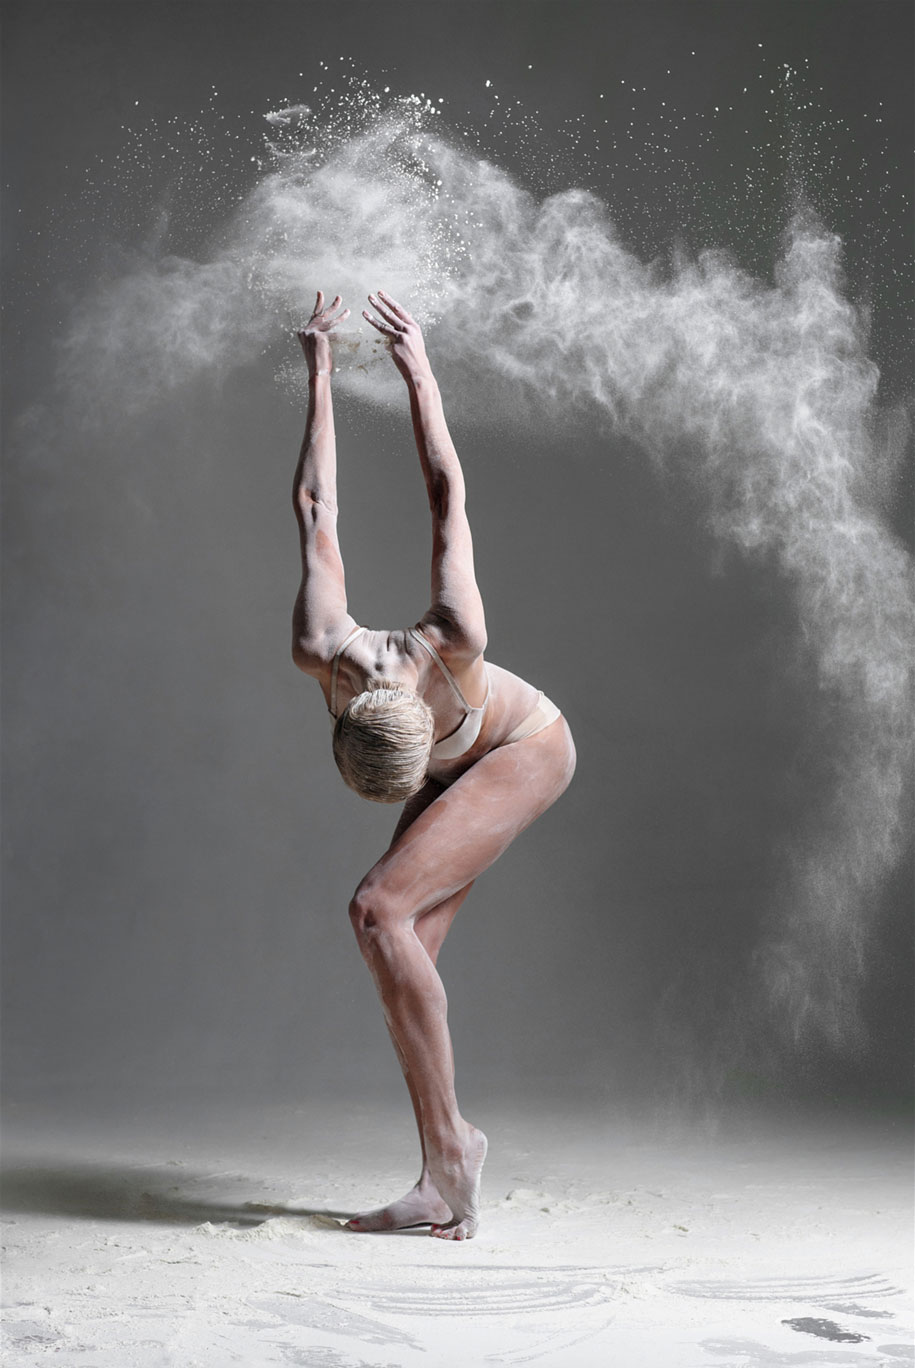 flour-ballet-dancer-photography-portraits-alexander-yakovlev-619